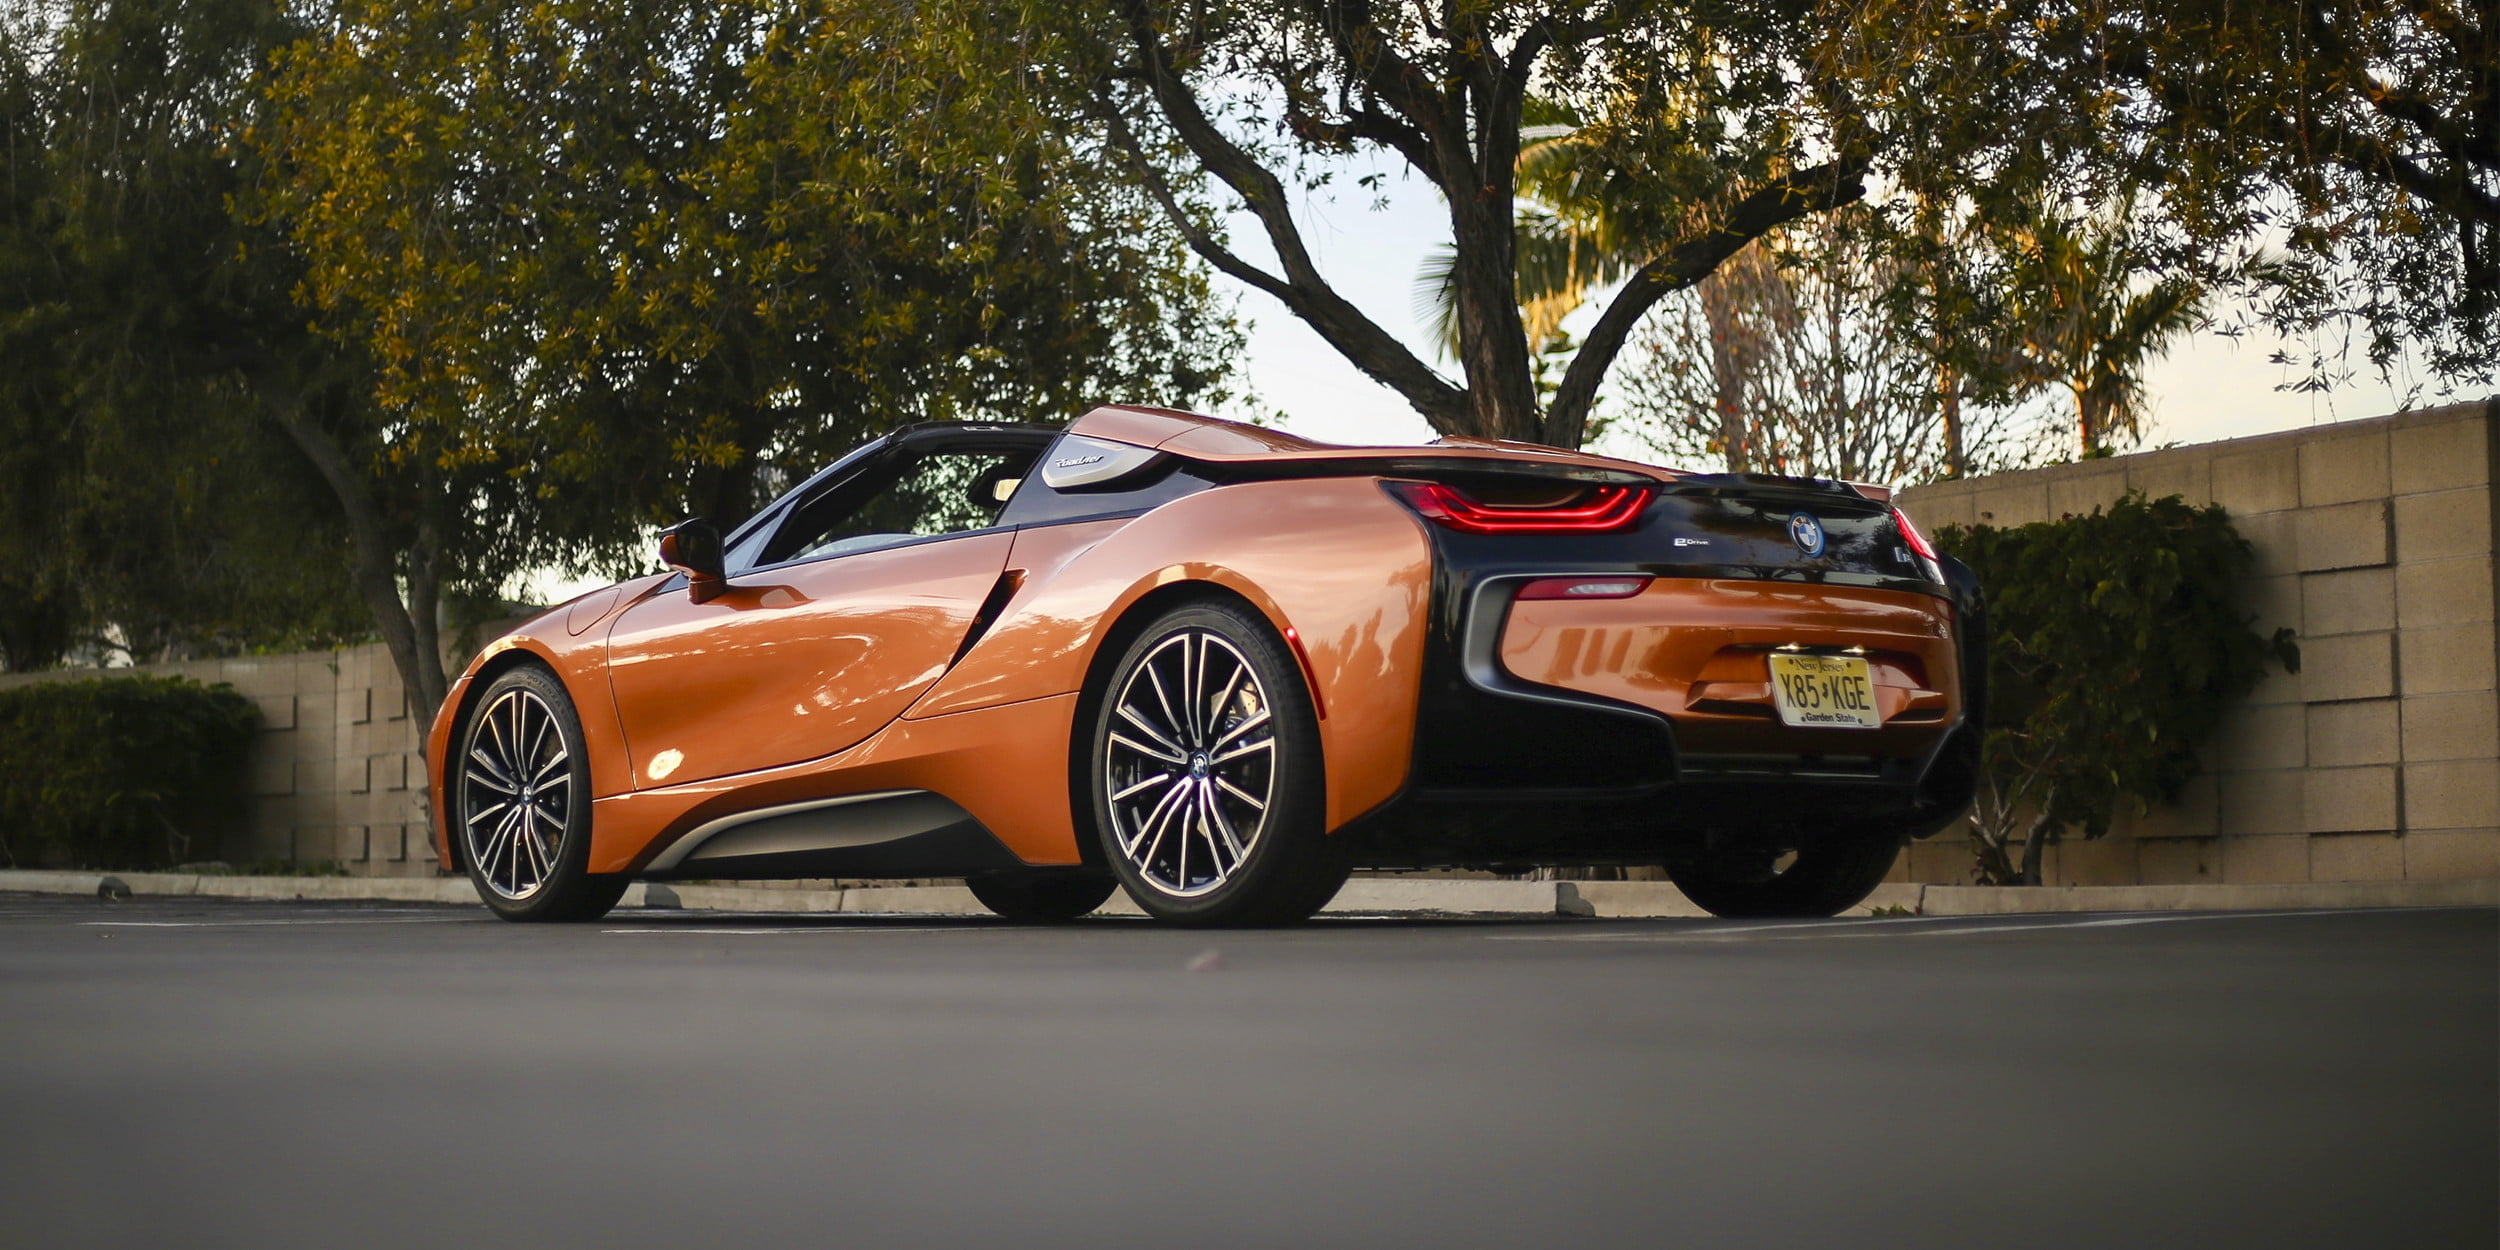 2019 Bmw I8 Roadster Review Ultra Smooth Ultra Niche Digital Trends